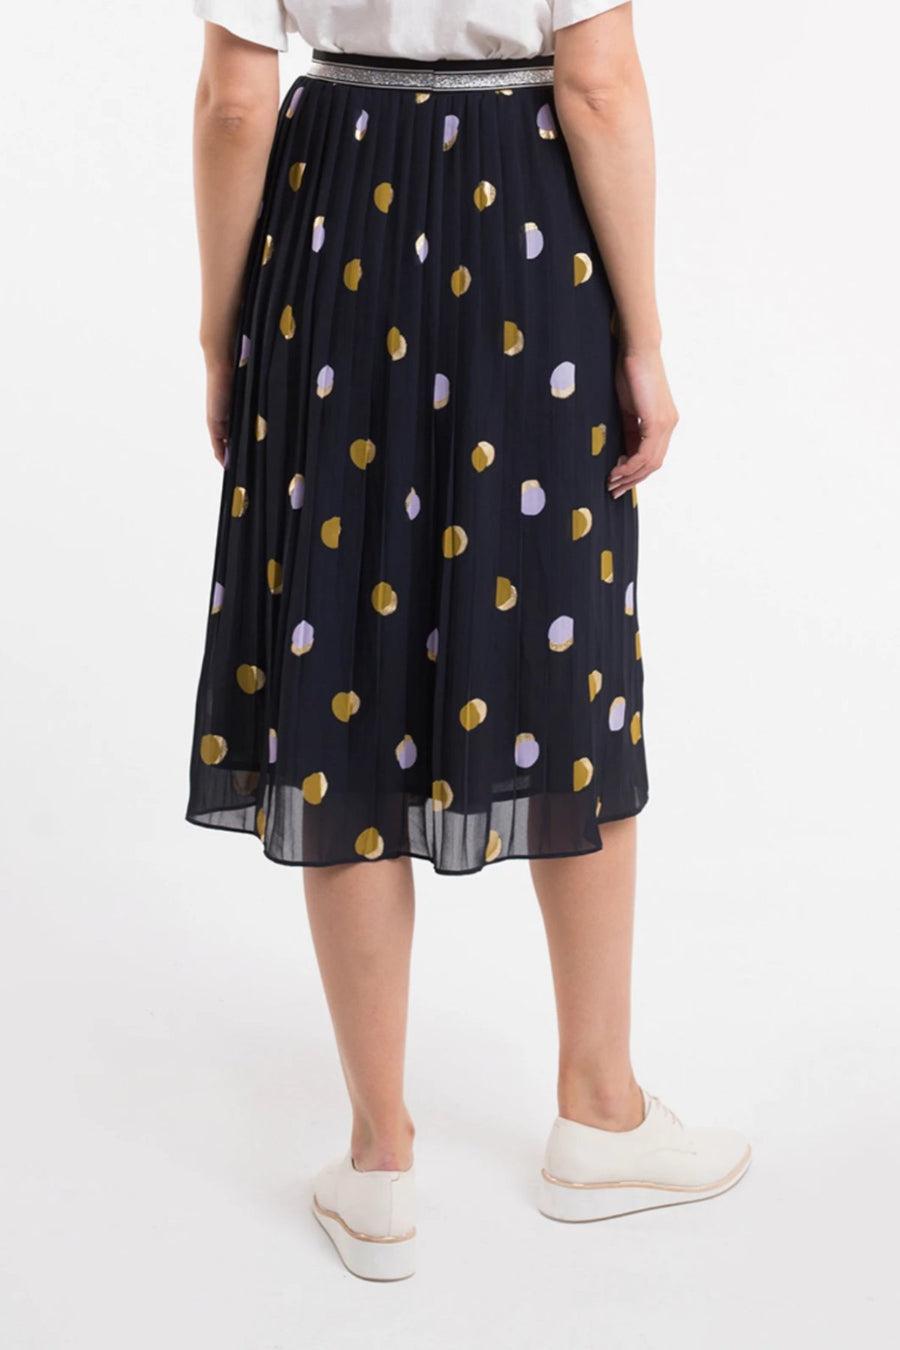 Spot Soft Pleat Skirt - Shop Online At Mookah - mookah.com.au